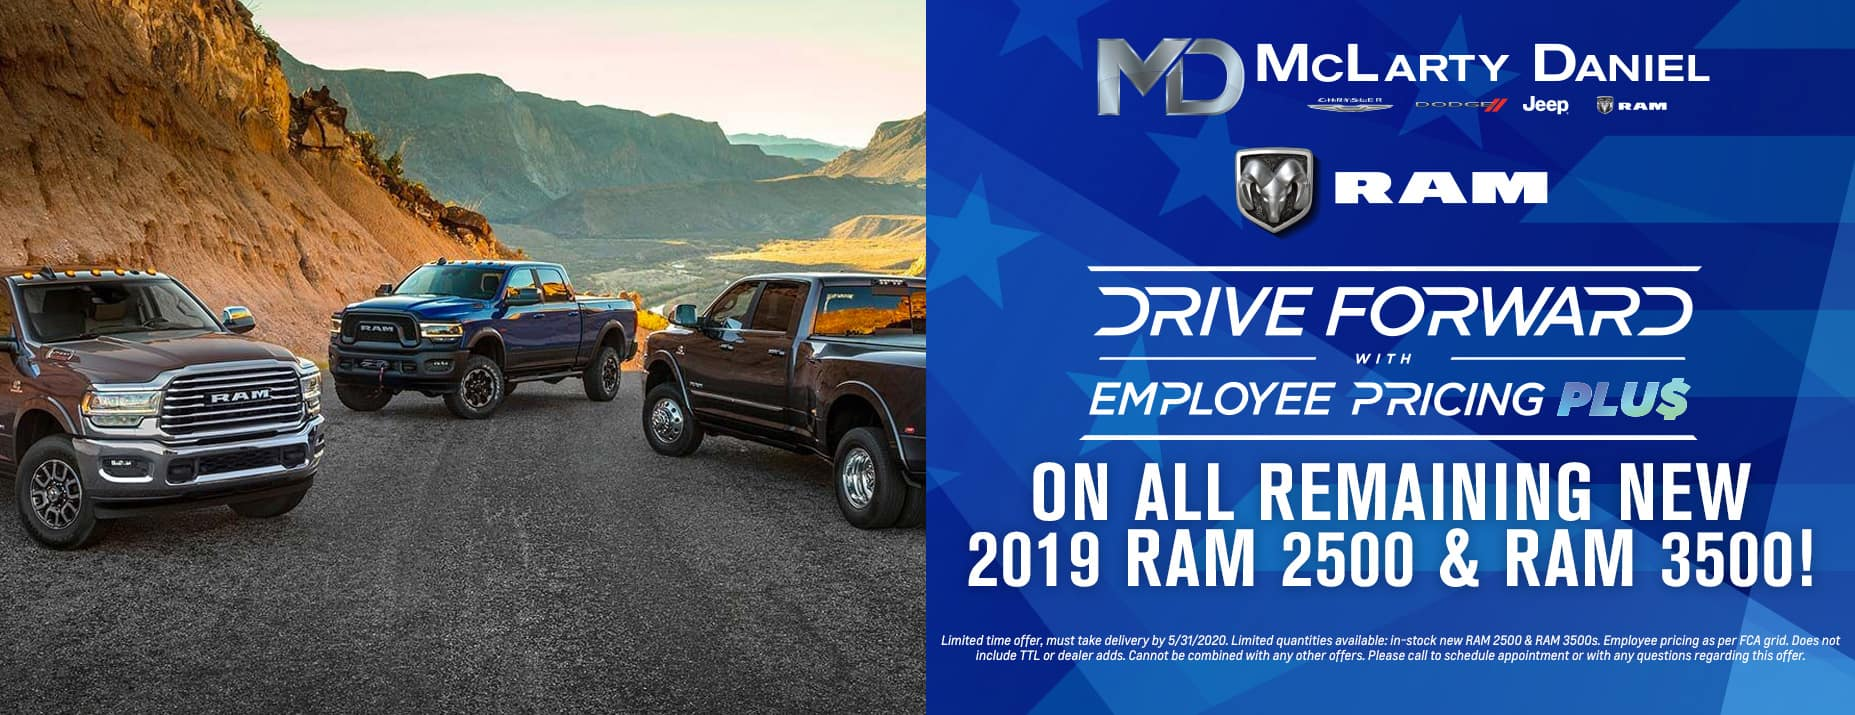 Get EMPLOYEE PRICING on all remaining new 2019 RAM 2500 & RAM 3500!